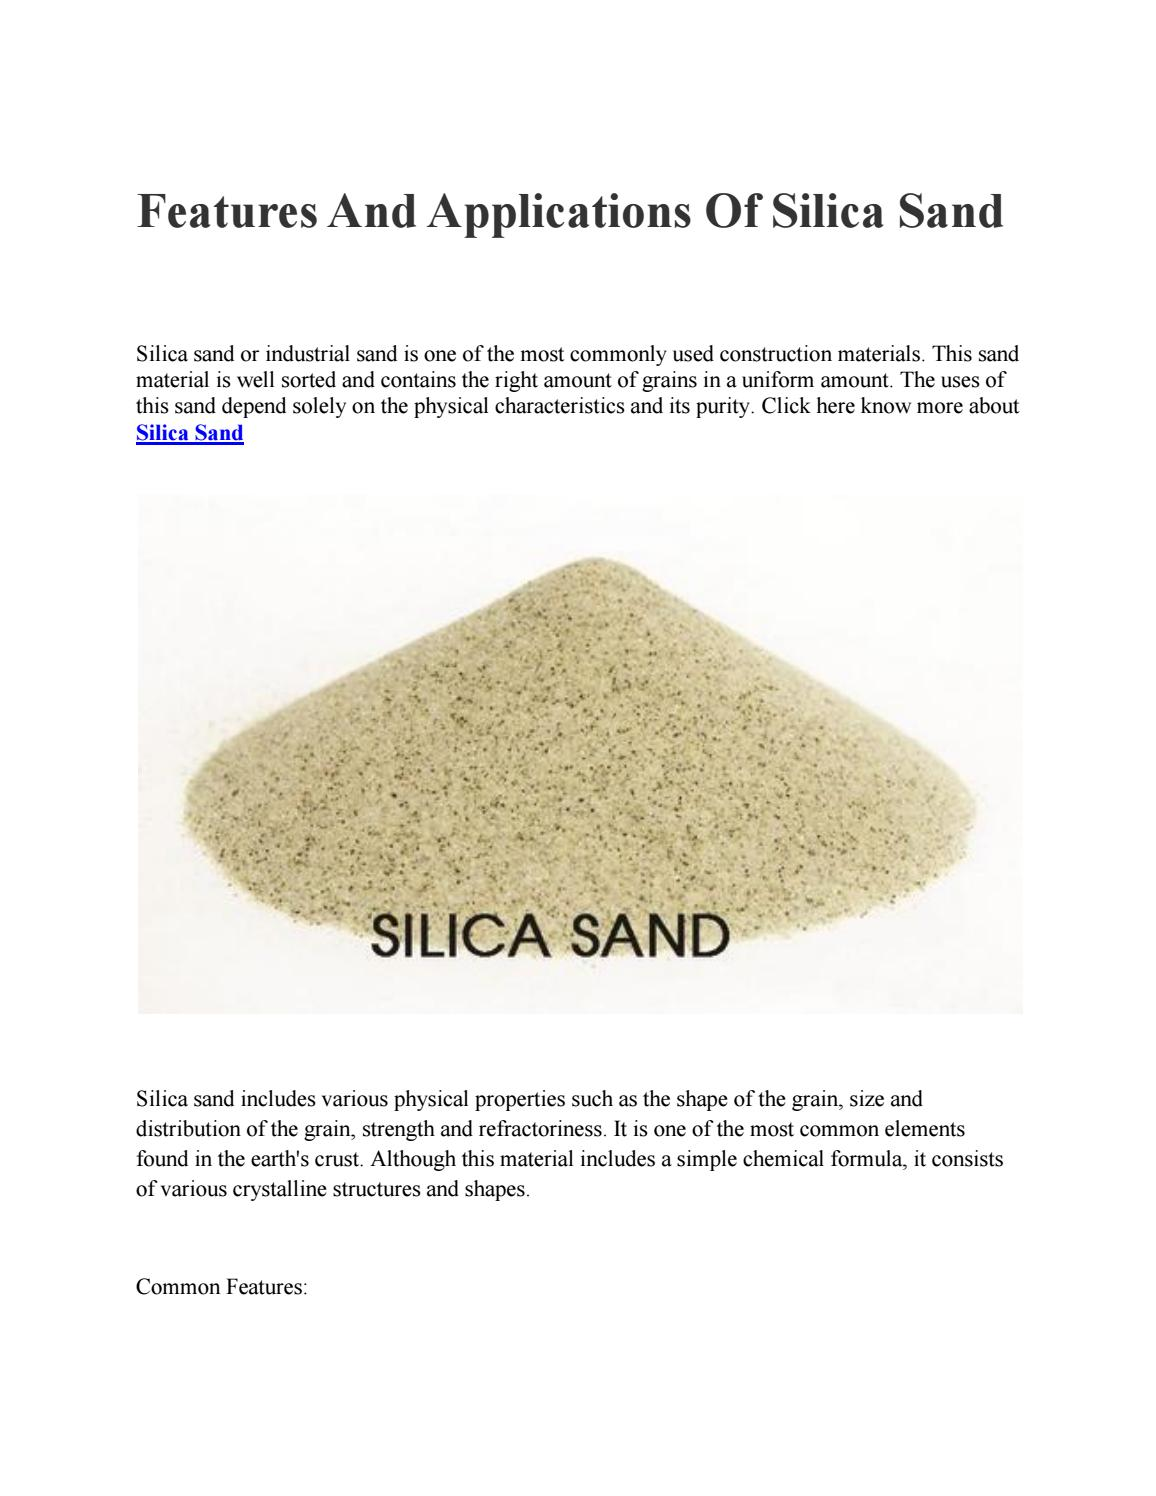 Features and applications of silica sand by danny567 - issuu